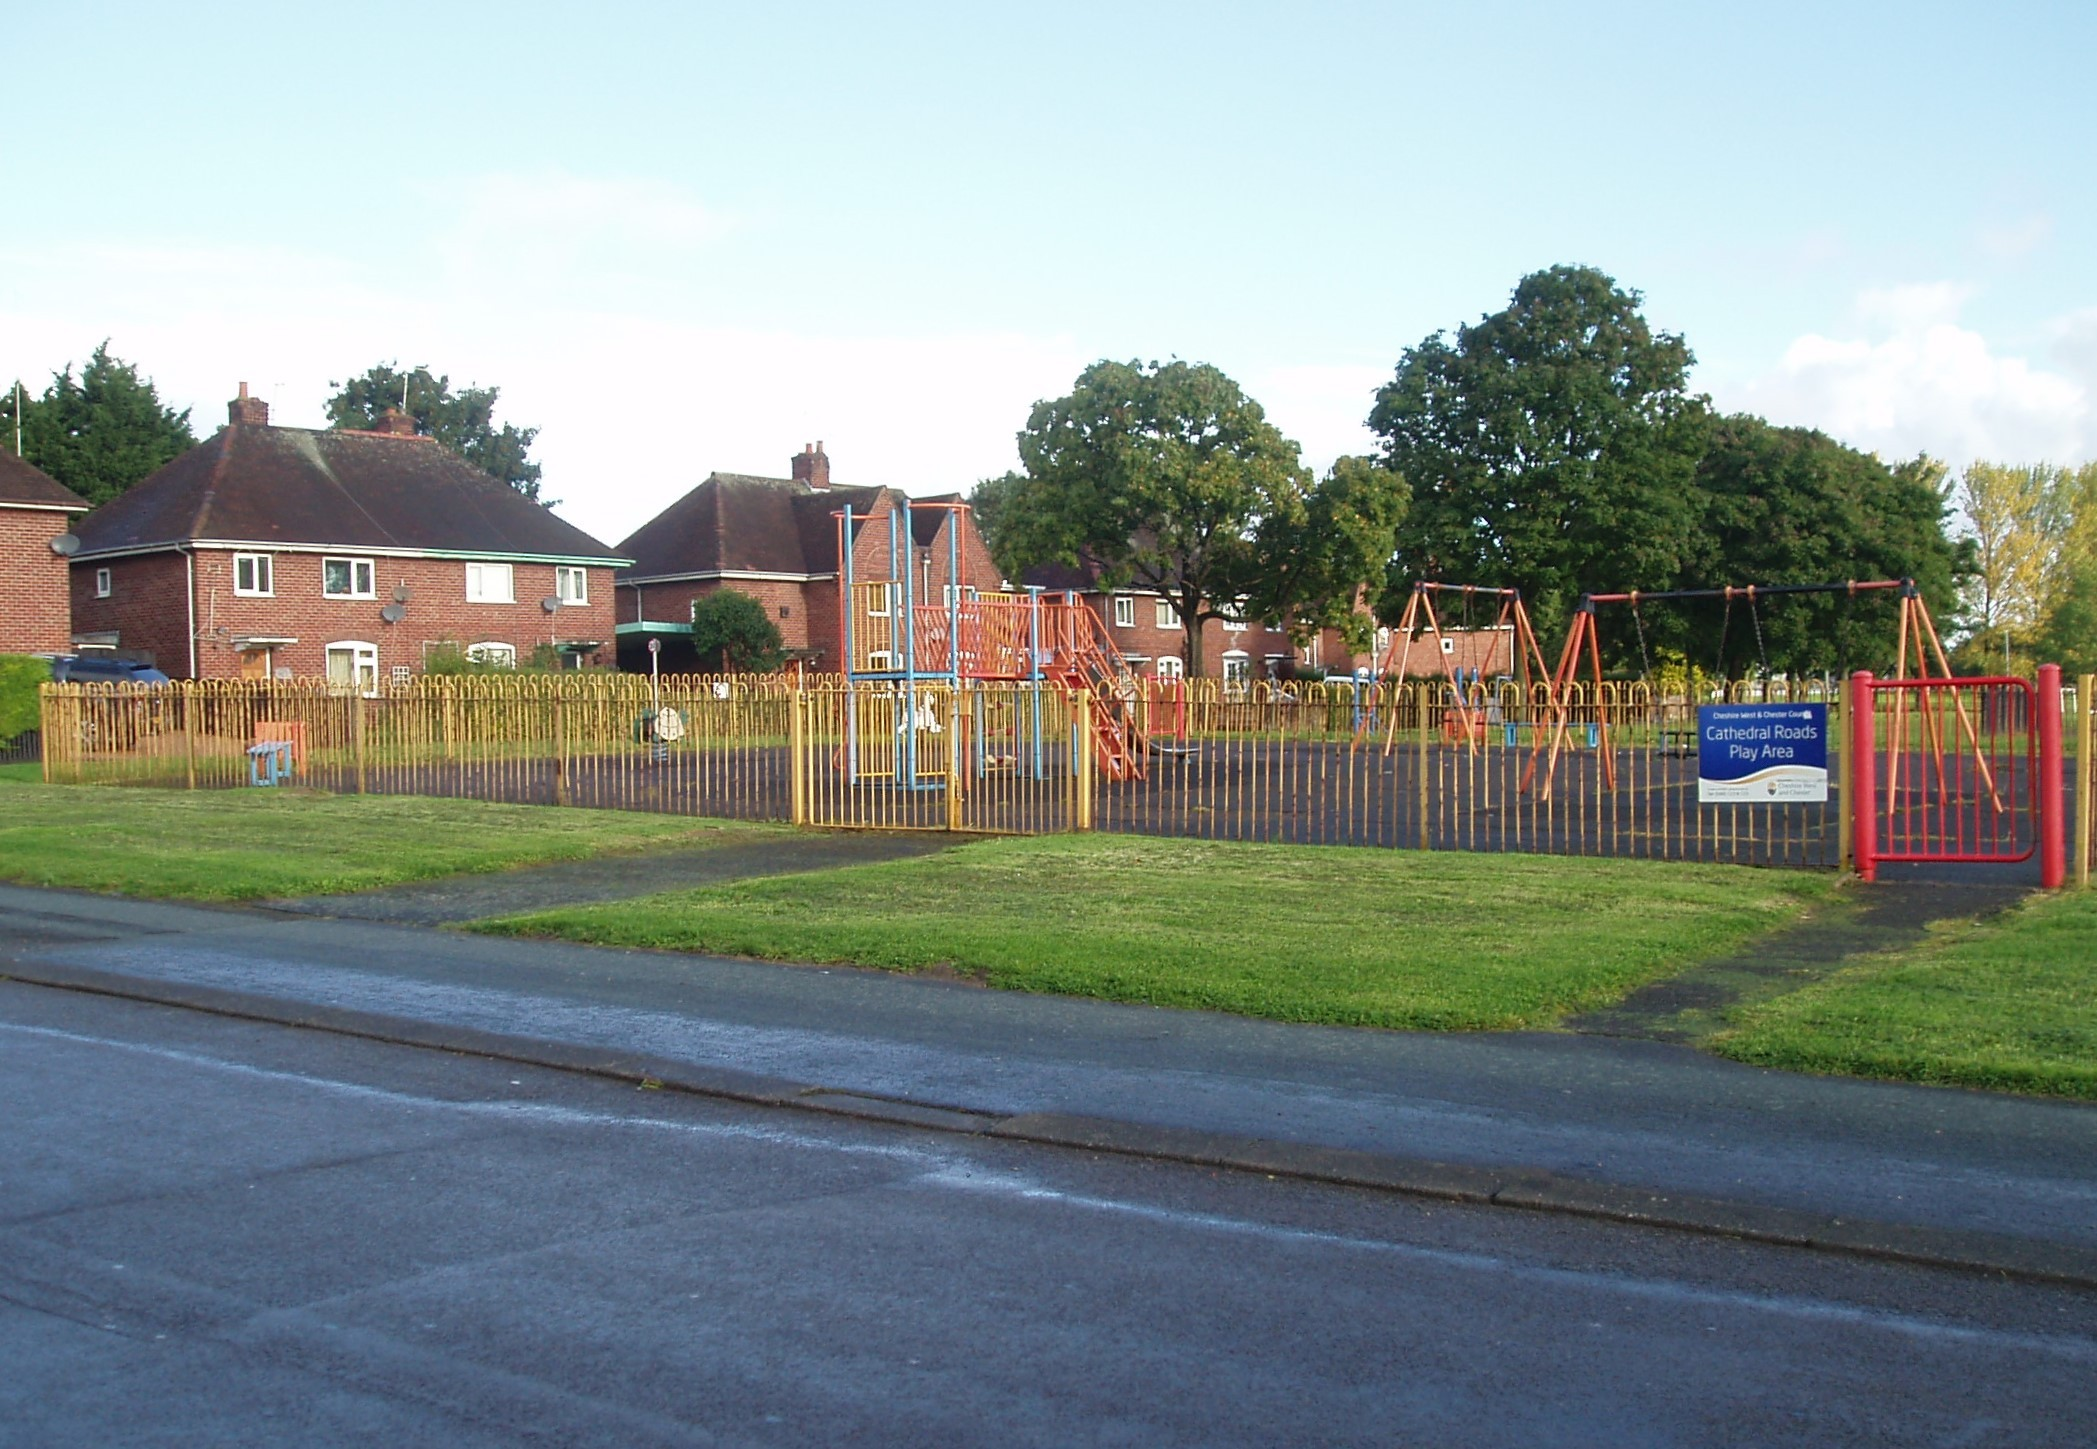 The Cathedral Roads play area in Blacon.